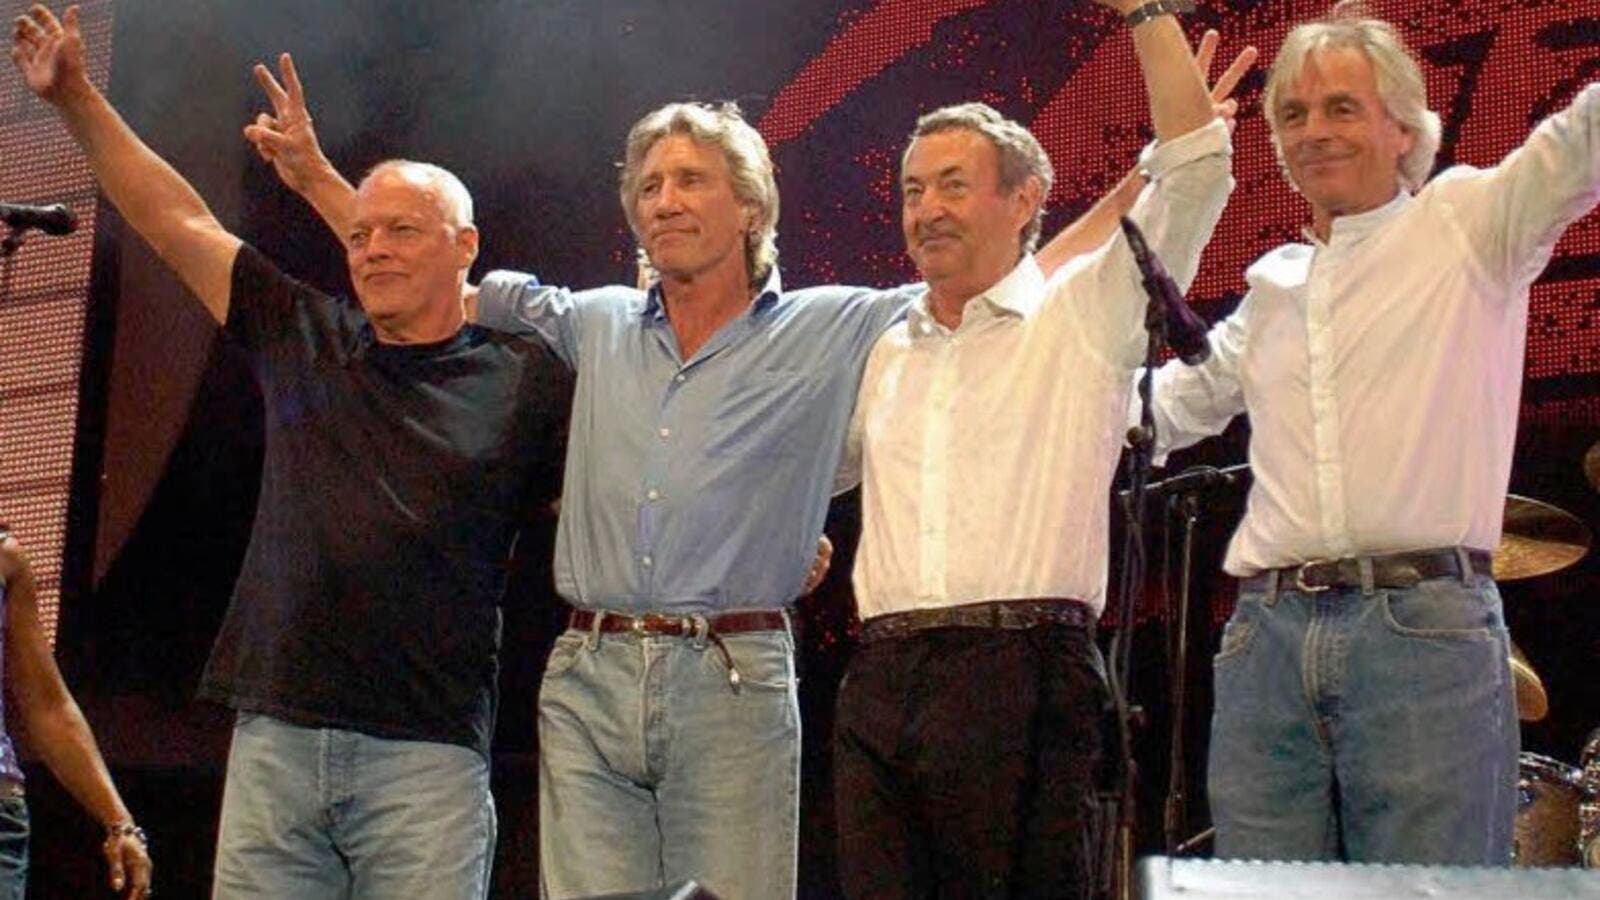 Pink Floyd reunites to stand with the Women of the Gaza Freedom Flotilla. (somethingelsereviews.com)